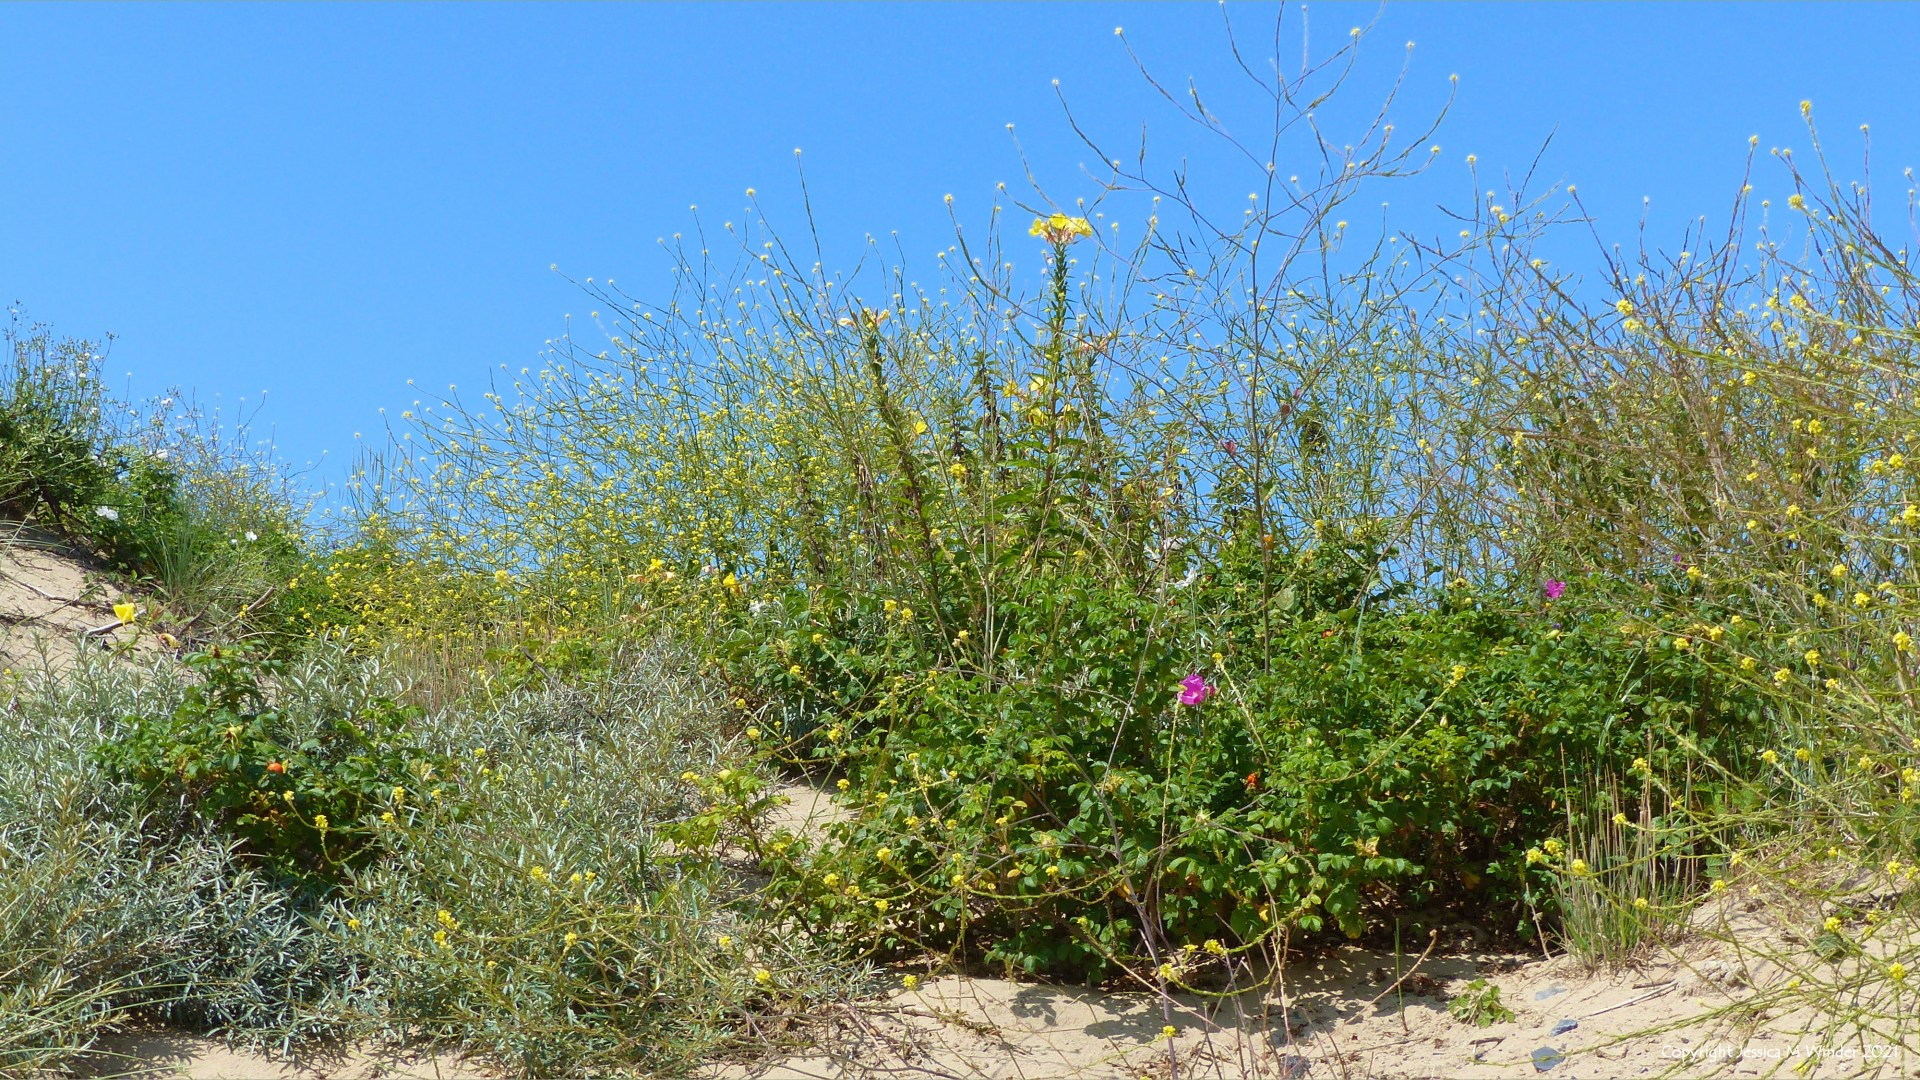 Plants growing on the loose sand of dunes